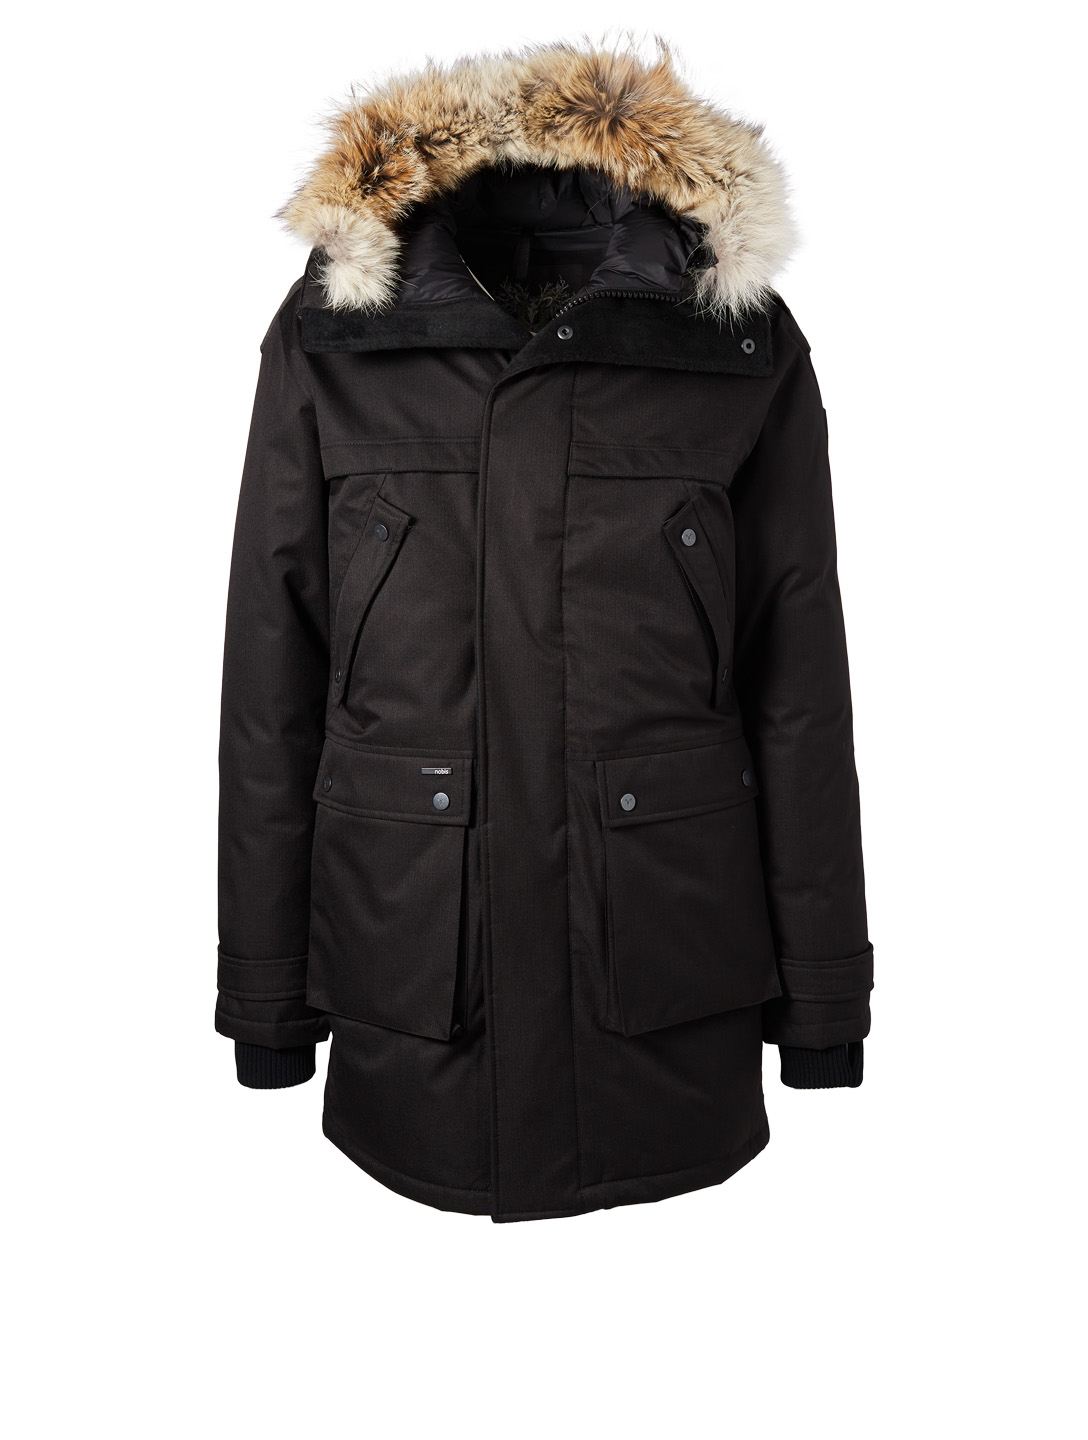 NOBIS Yatesy Long Parka With Fur Trim Men's Black